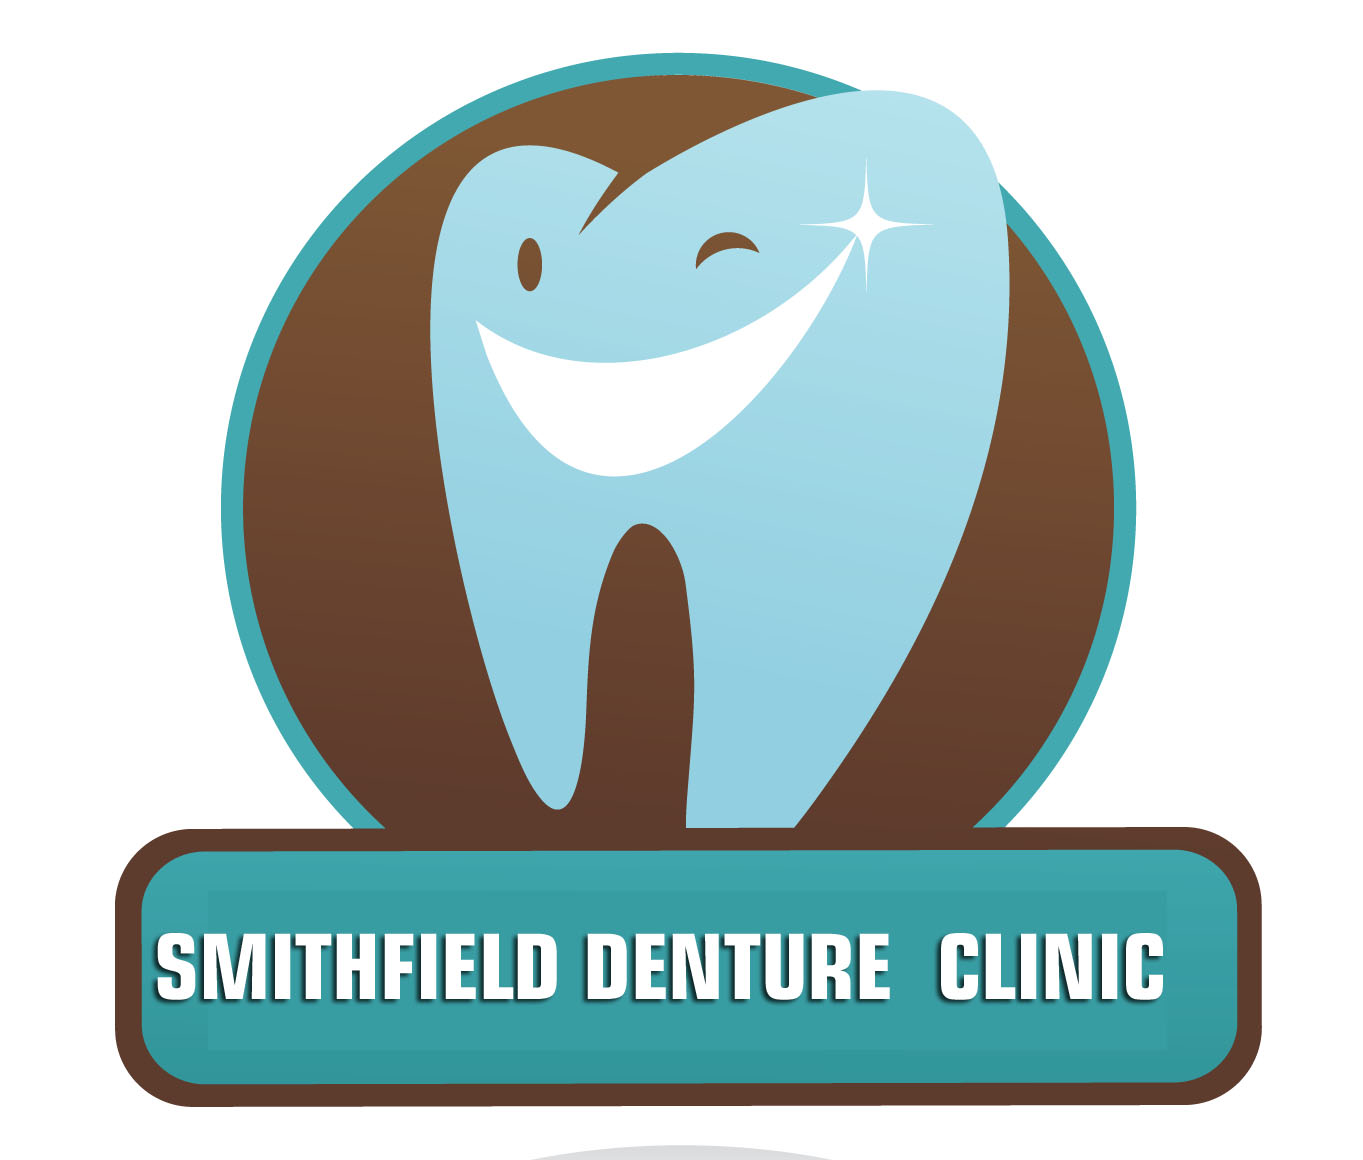 FAIRFIELD DENTURE CLINIC